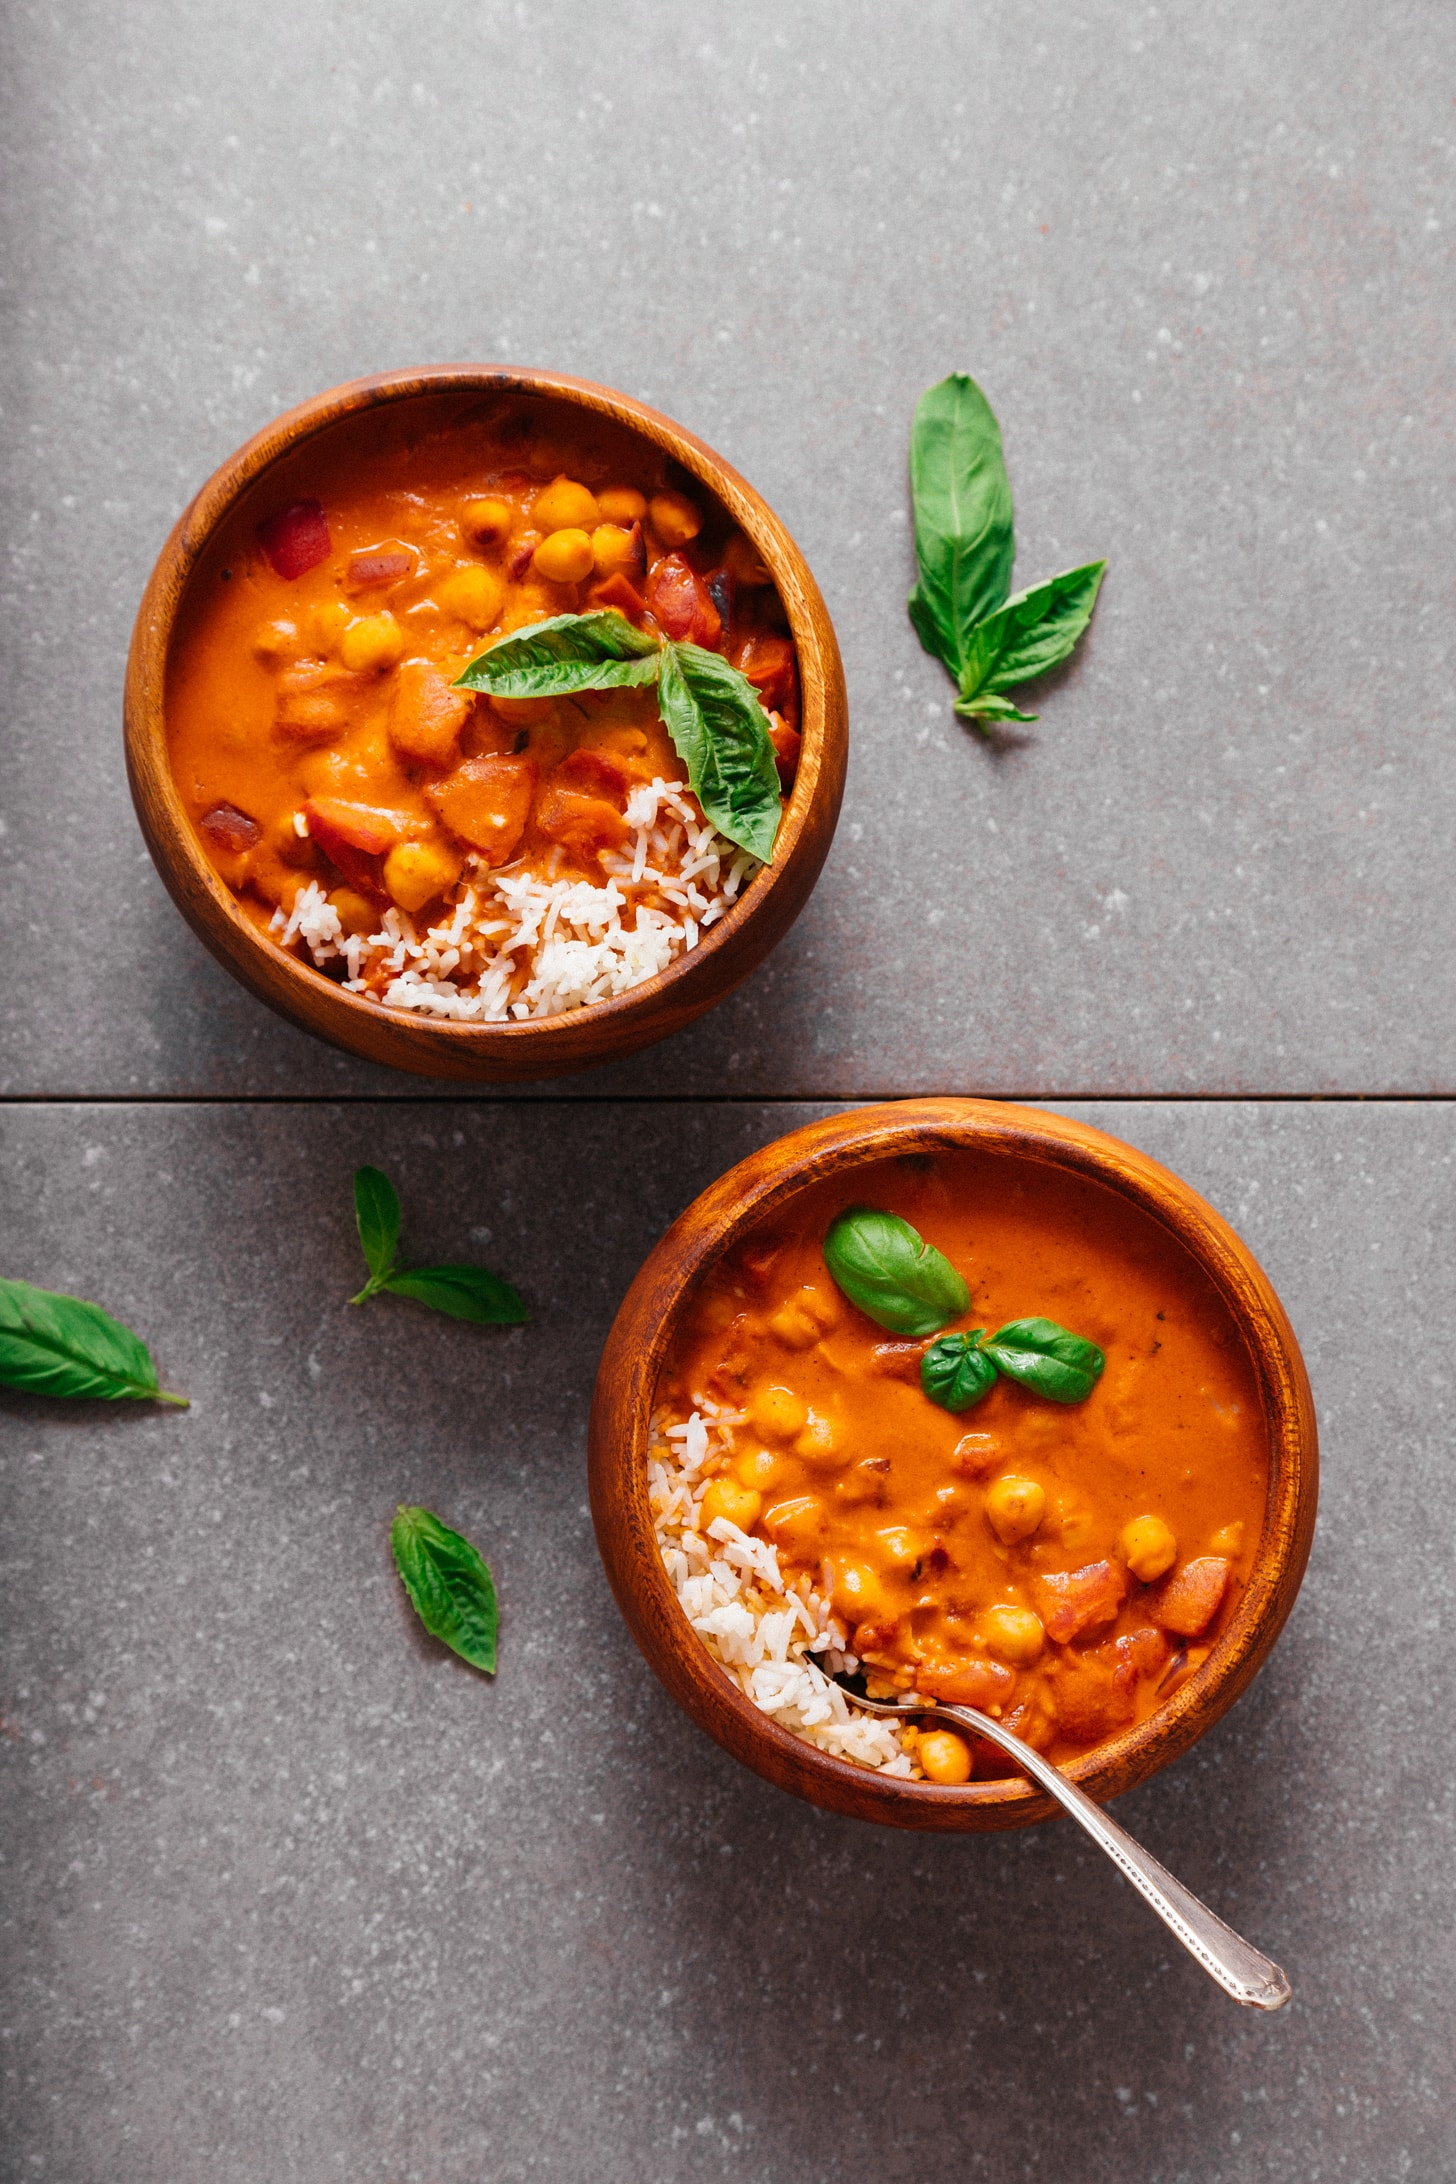 Two bowls of our 1-Pot Chickpea Tomato Peanut Stew recipe topped with fresh basil